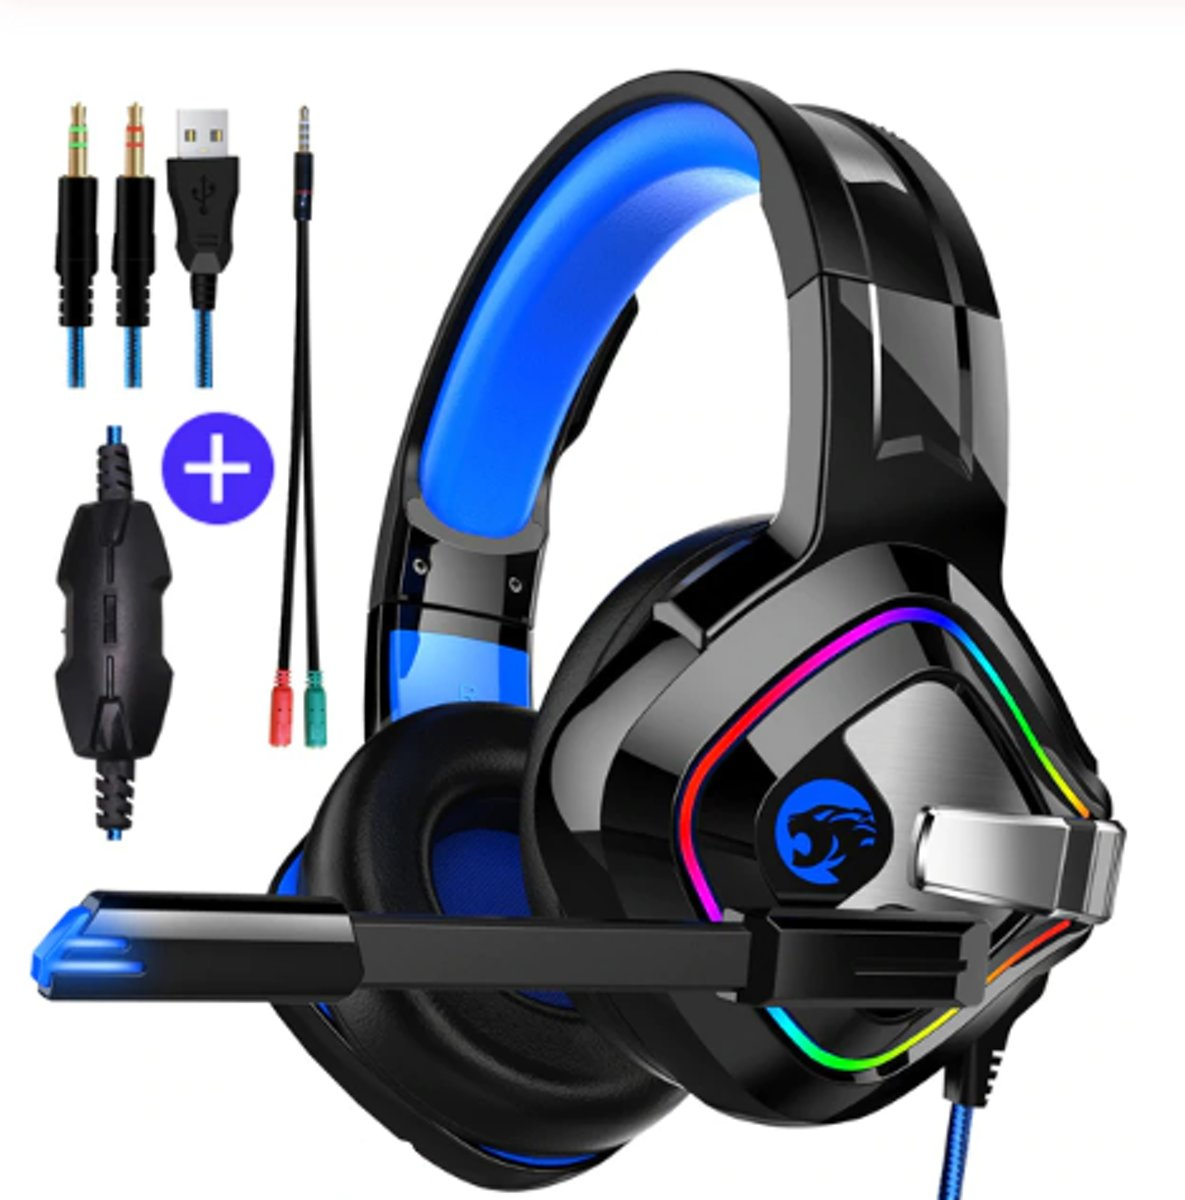 Gaming headset 4D - Gaming headset Xbox One - Gaming headset Laptop - Gaming headset Ps4